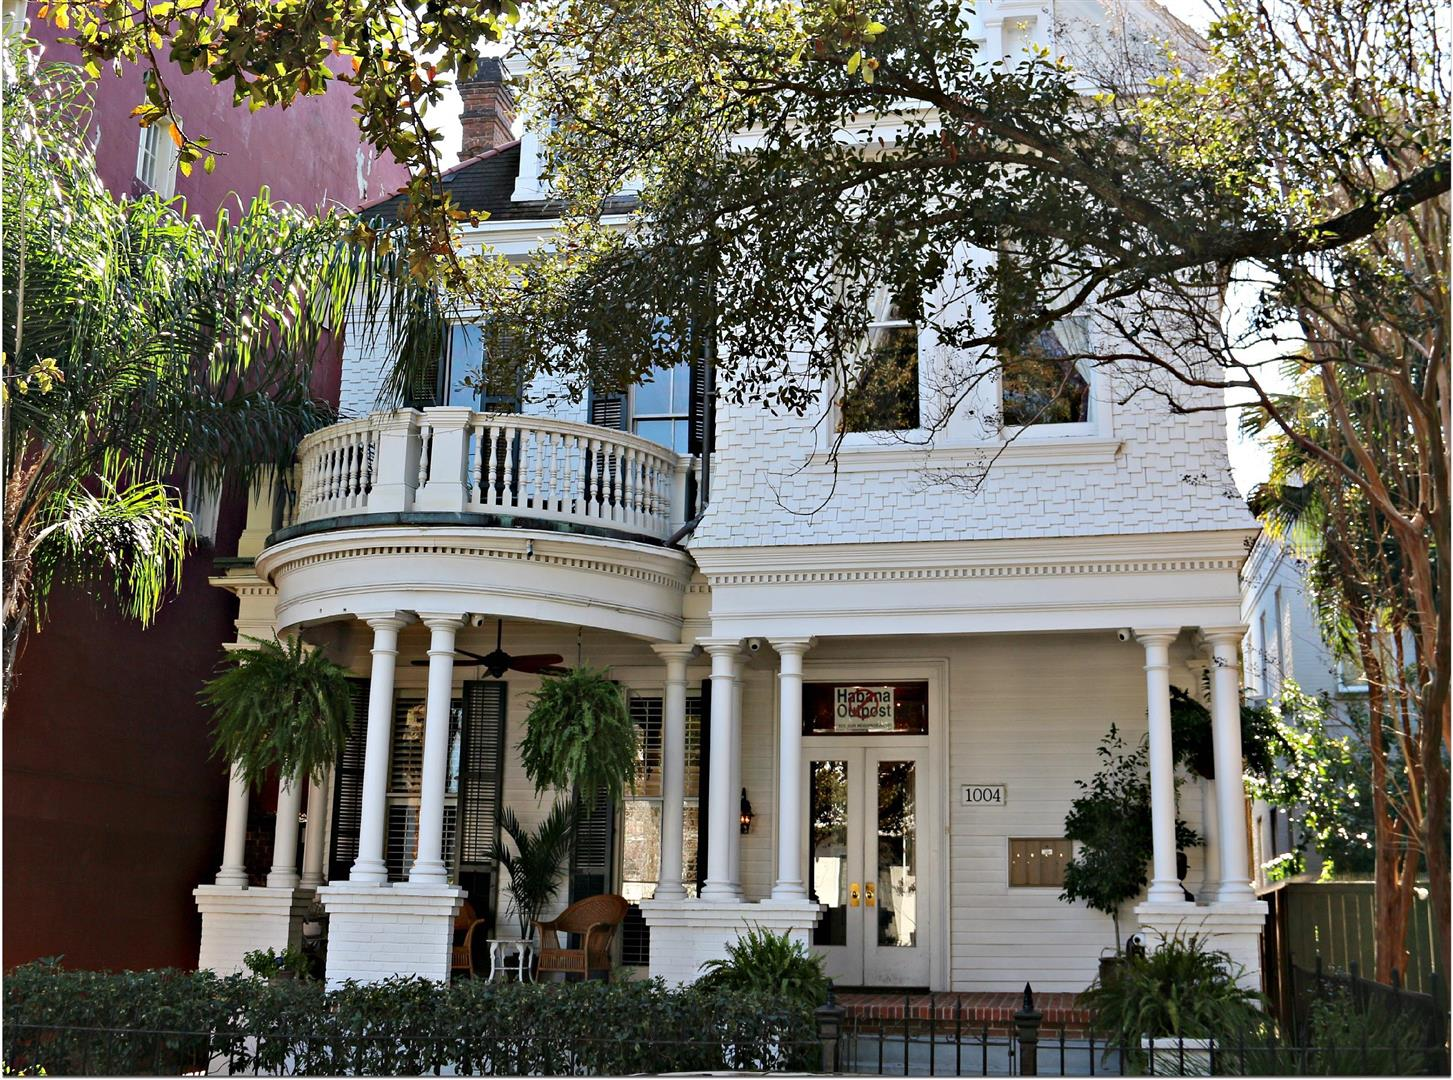 1004EsplanadeAve.,FrenchQuarterCondo.jpg